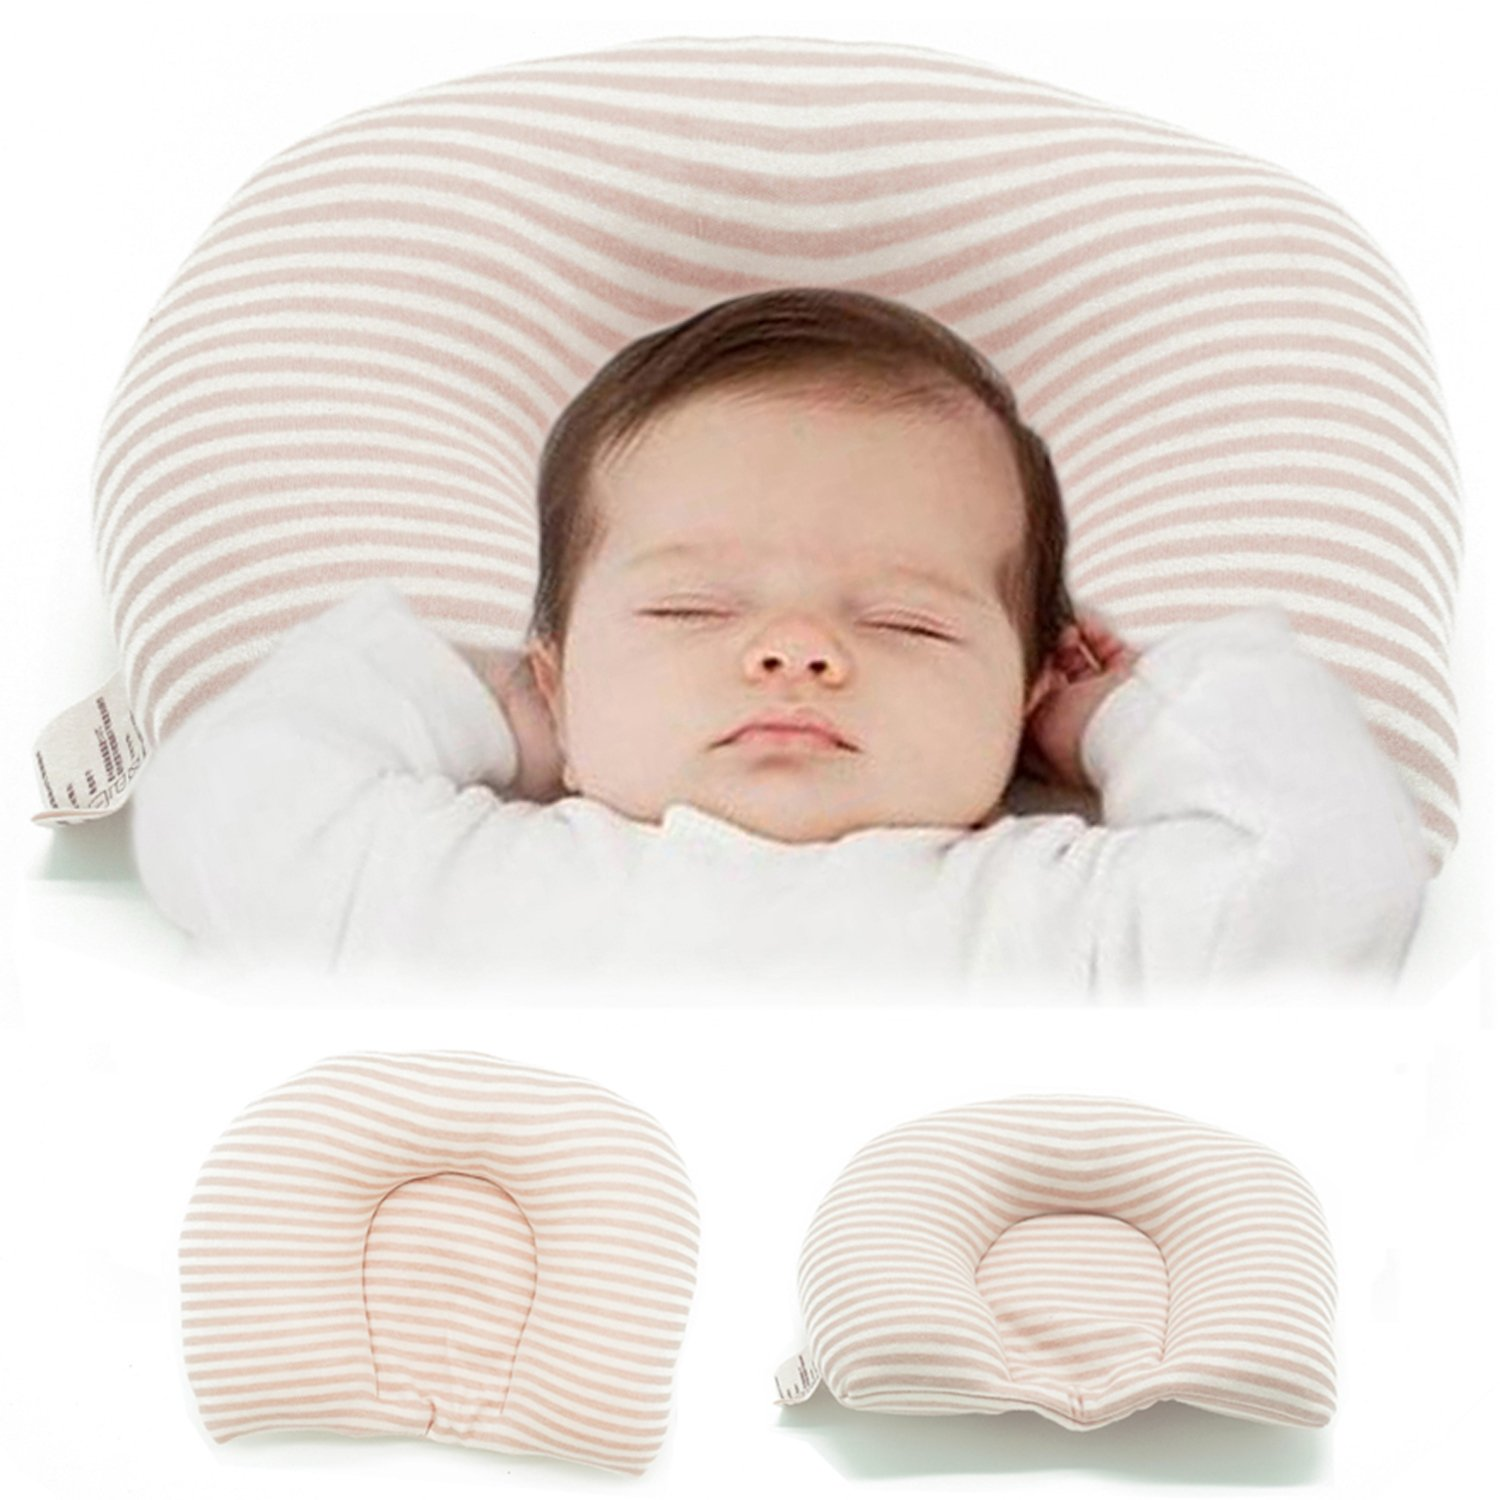 Newborn Baby Head Shaping Pillow Prevent Plagiocephaly Flat Head Syndrome 100% Organic Cotton (0-6 Months), use in Baby Bed, Baby Carriage and Car Safety Seat, Neck-Protector Infant Pillow (Brown) MICROFIRE